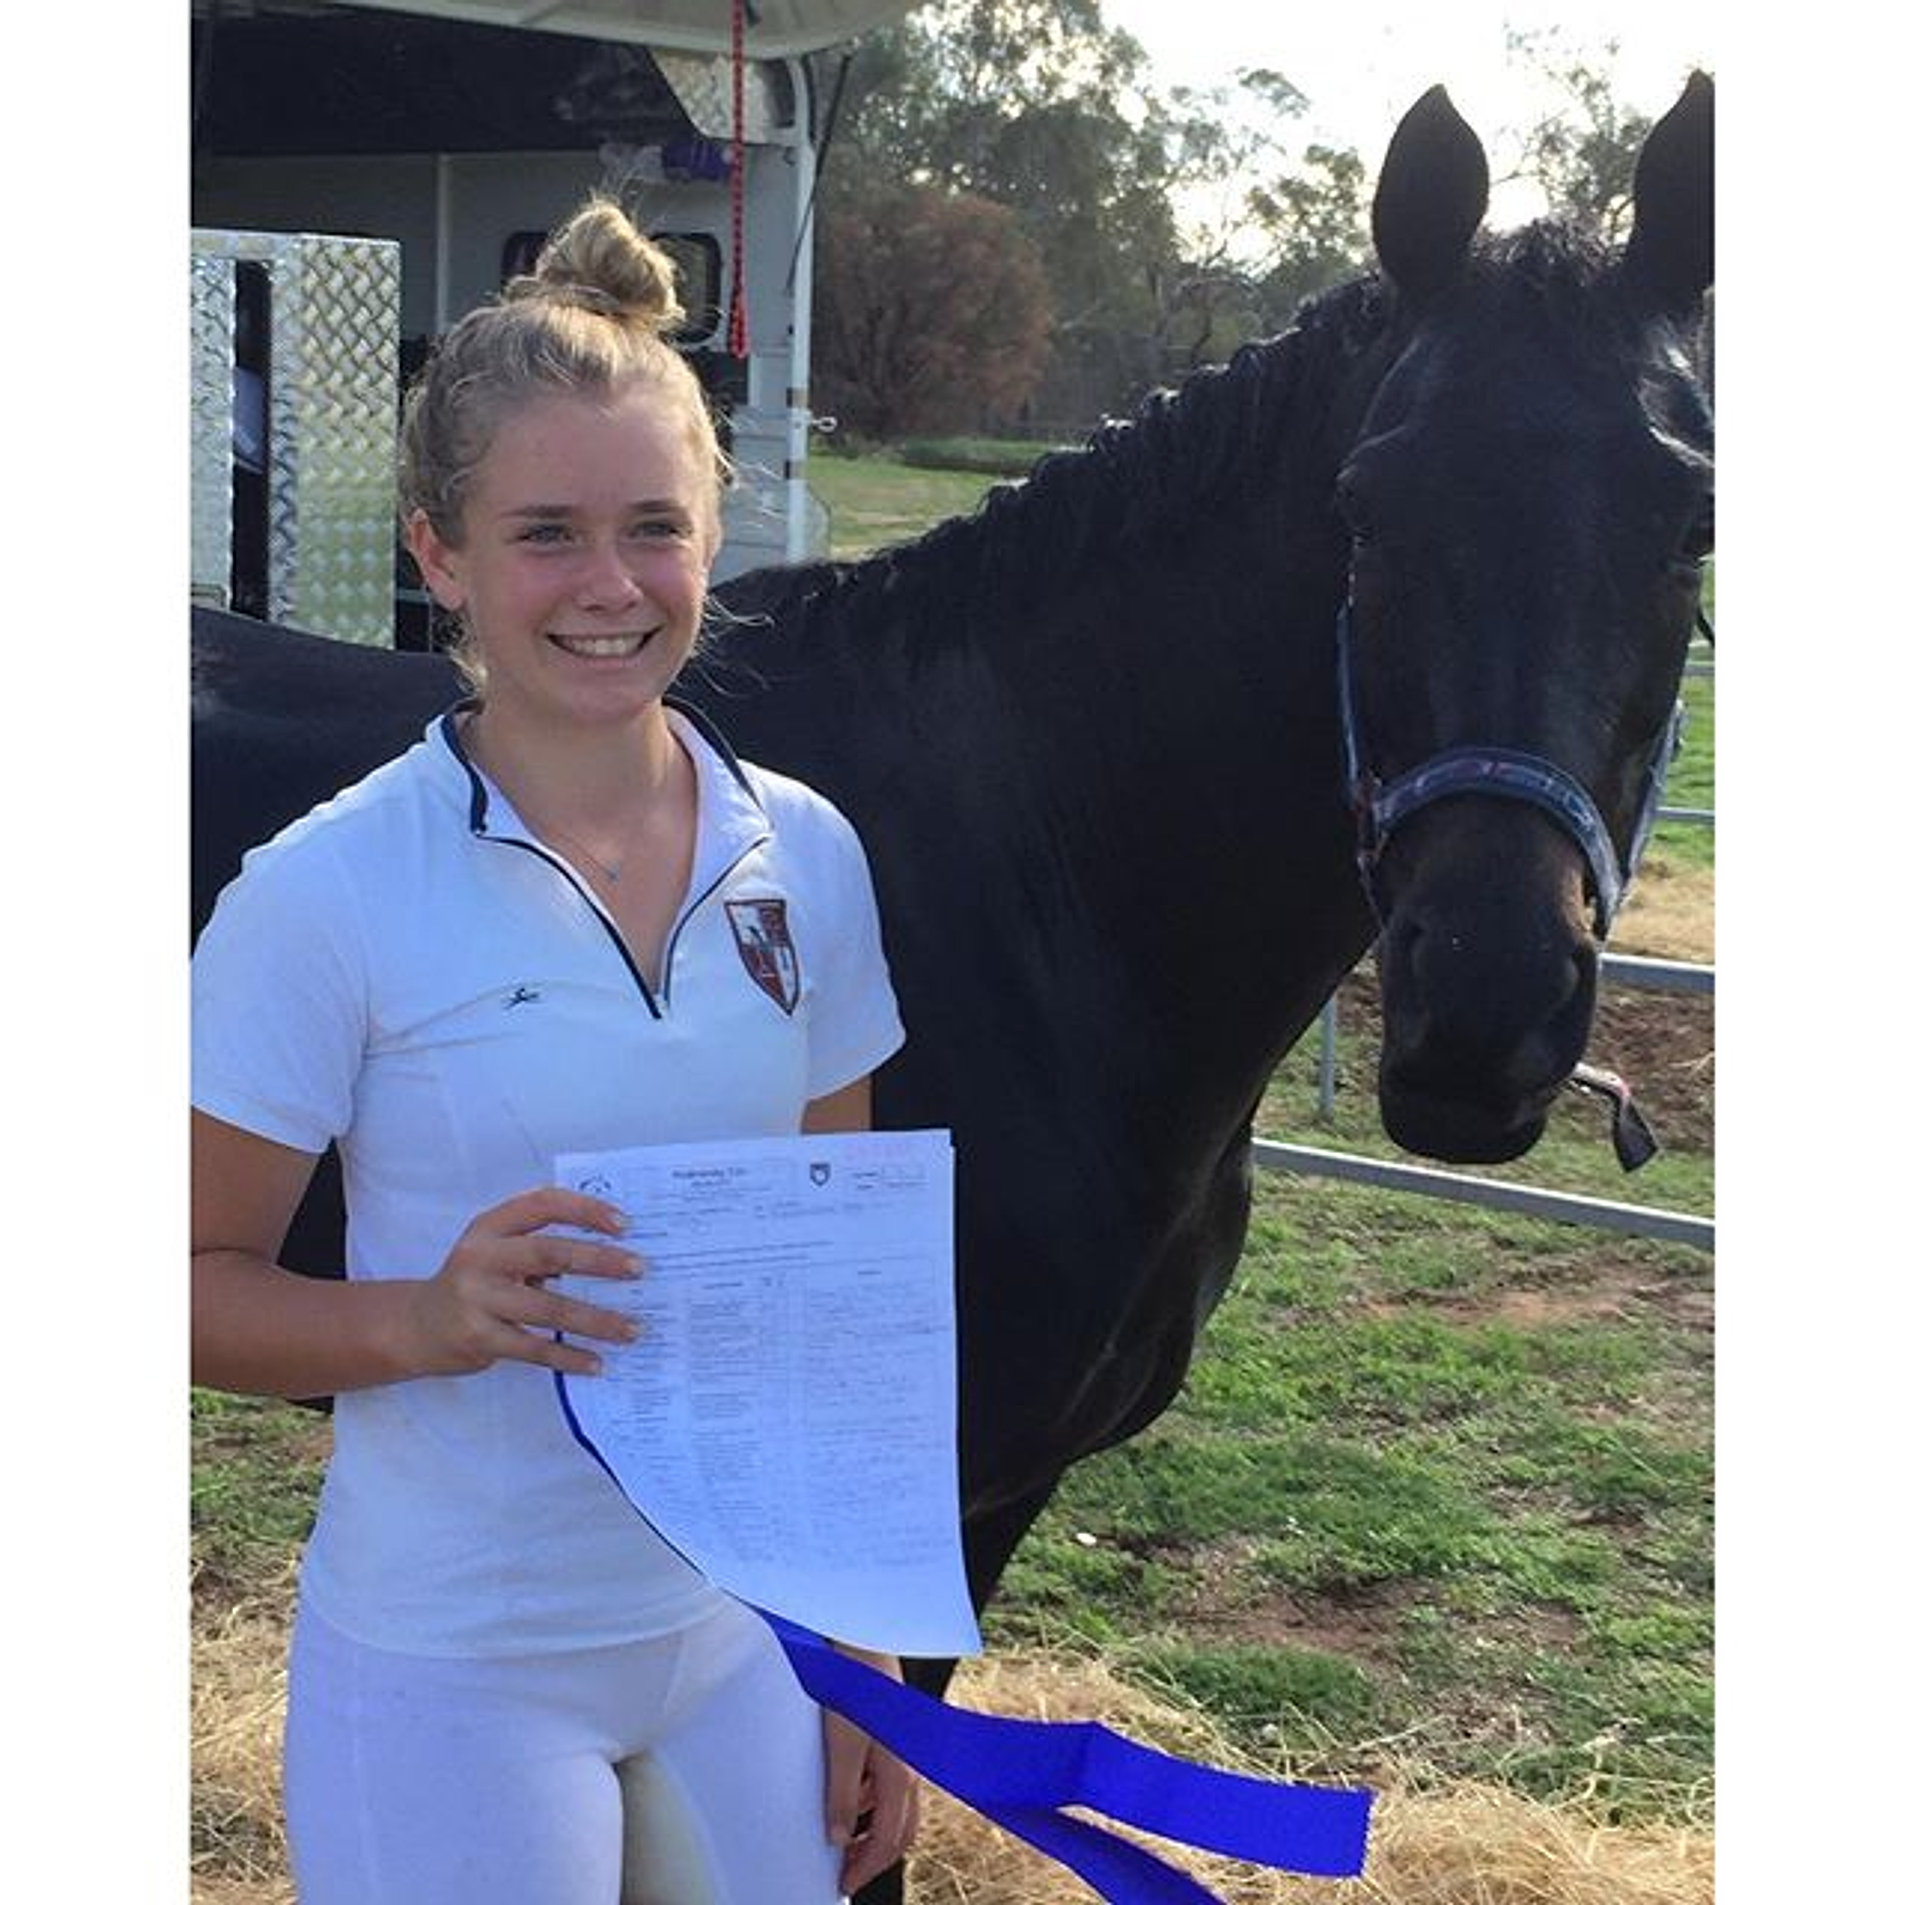 Not sure who had the biggest smile for their first blue ribbon together - mum, kid or horse ��